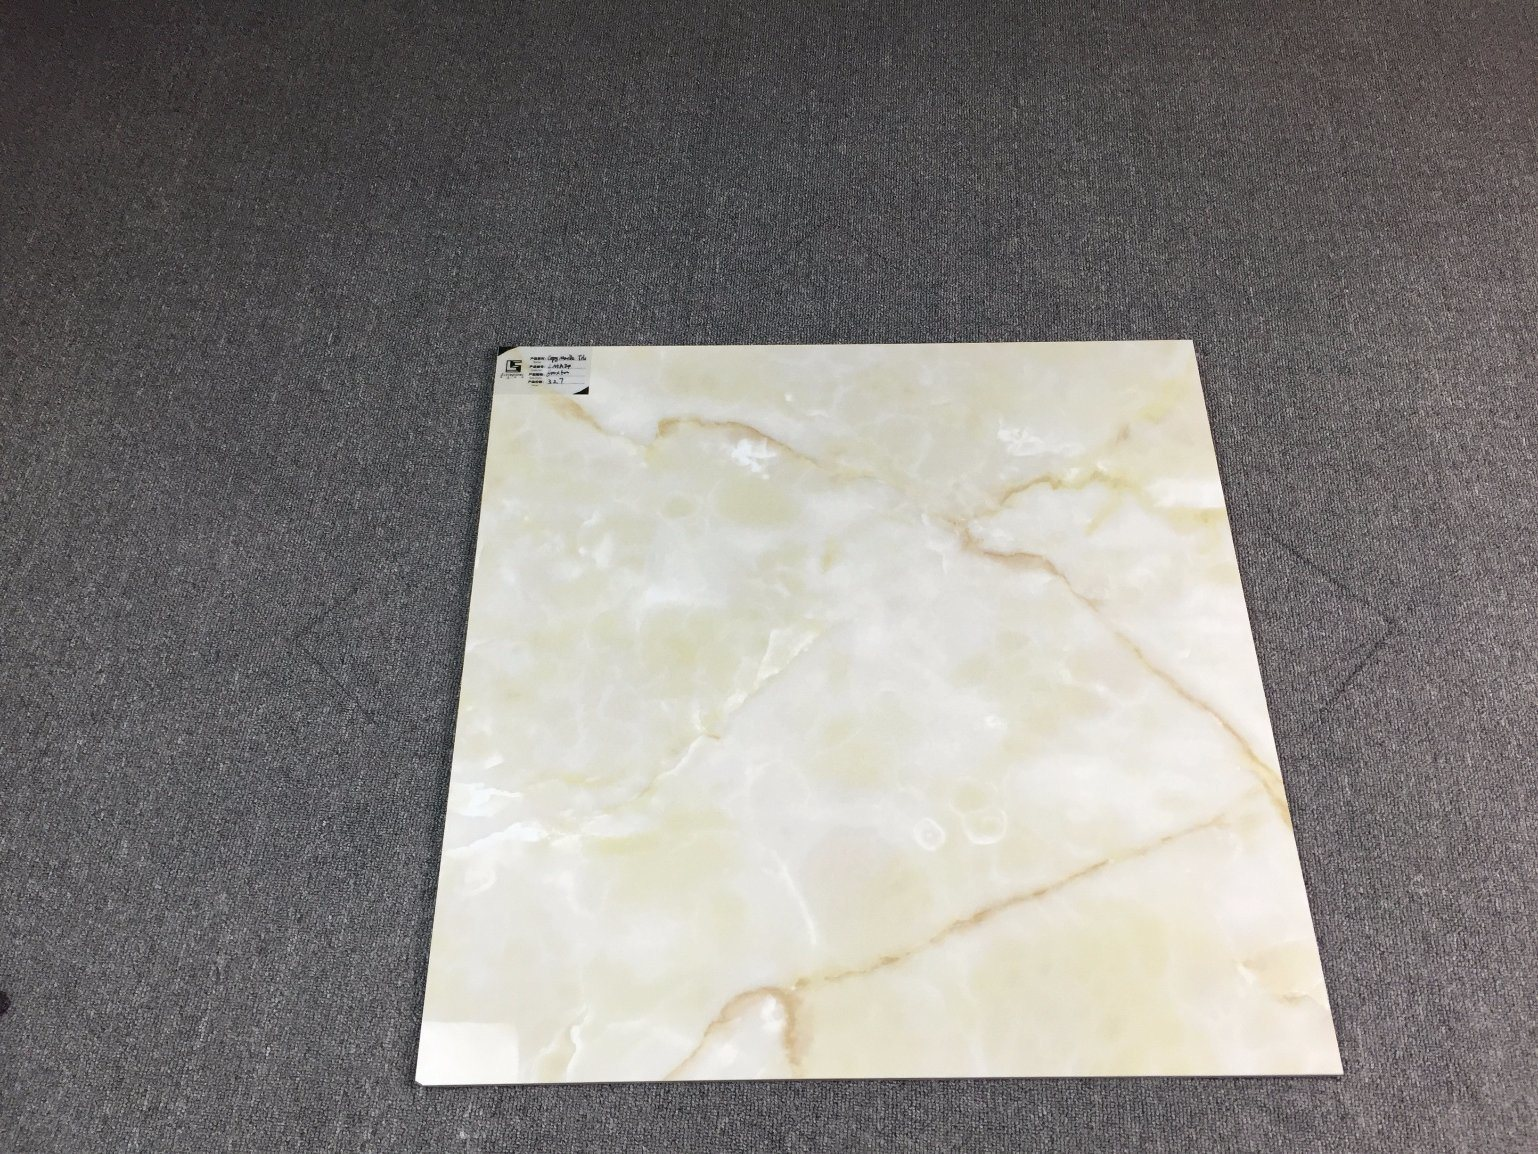 Made in china 600x600 glazed polished glossy floor tiles china made in china 600x600 glazed polished glossy floor tiles china stone tile wall tile dailygadgetfo Choice Image